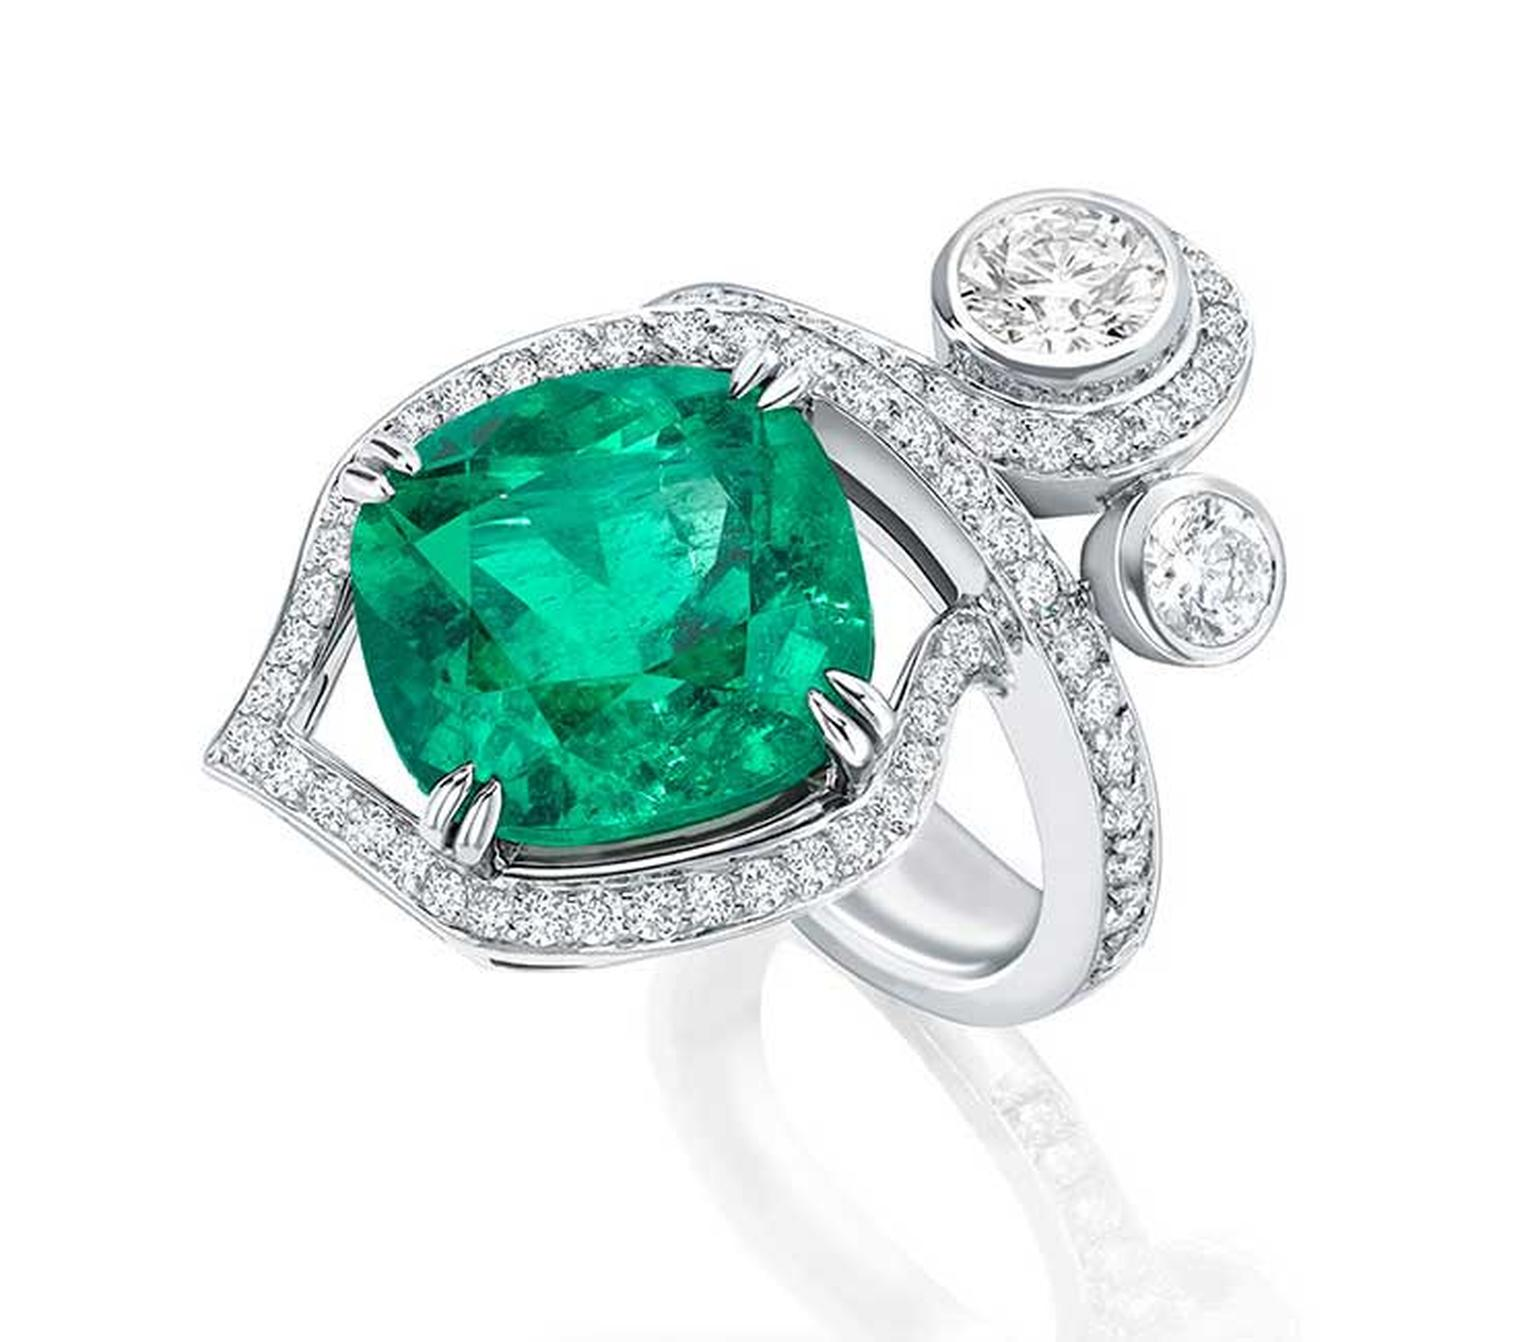 Boodles Greenfire emerald ring, set with a single emerald surrounded by pavé diamonds and two brilliant-cut diamonds designed to look like entwined forest foliage.